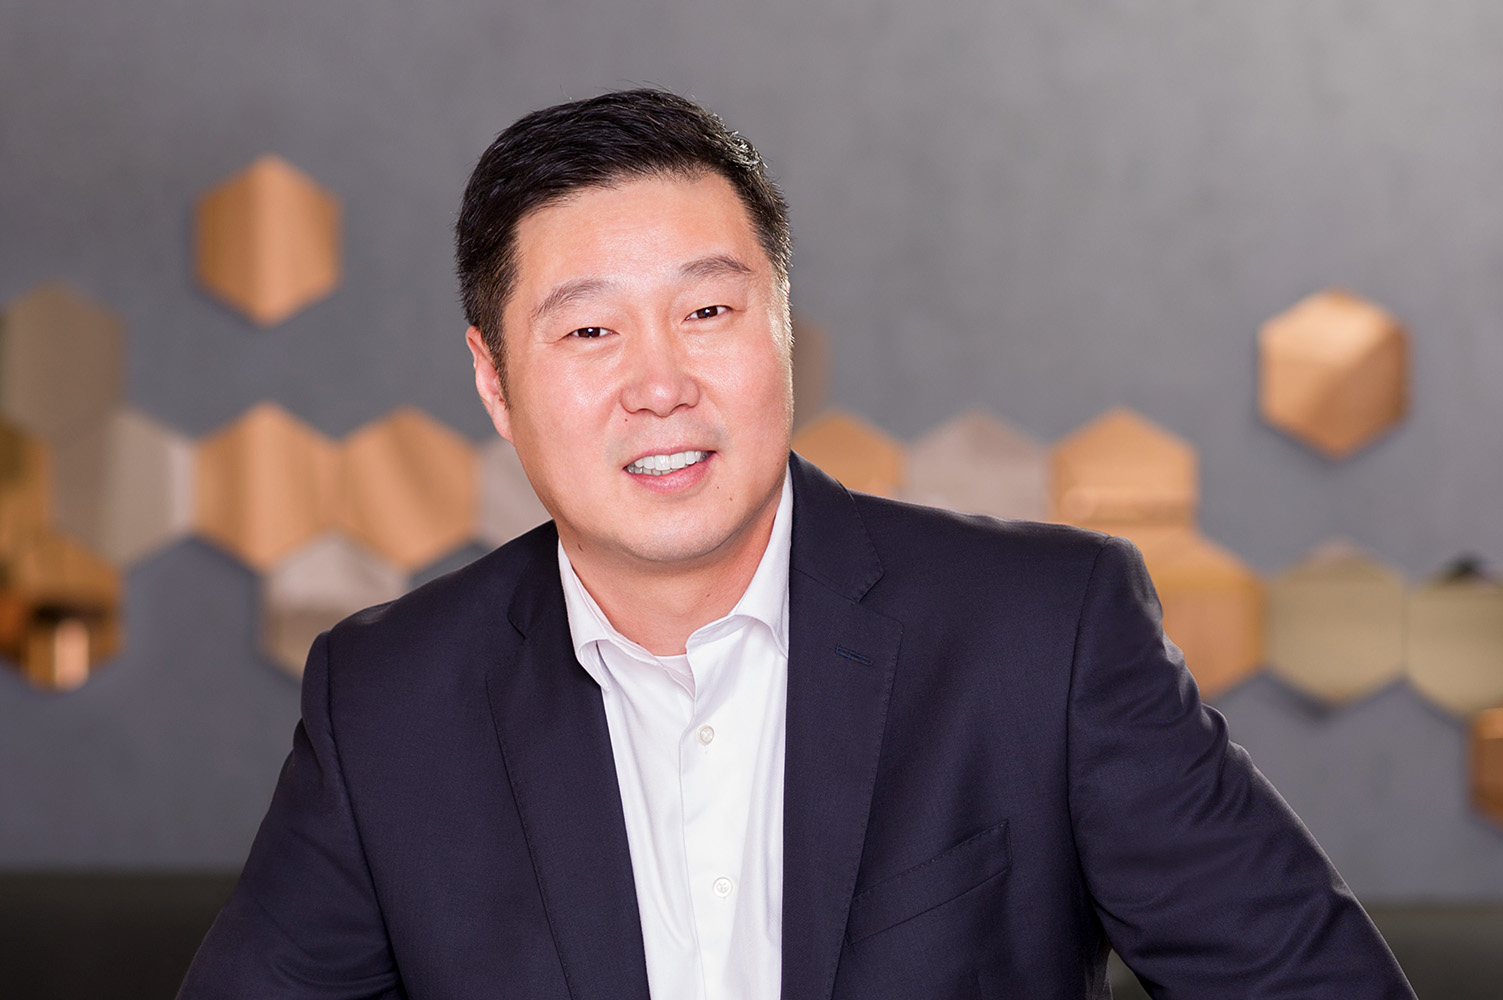 DKSH names Sam Oh as new Chief Information Officer